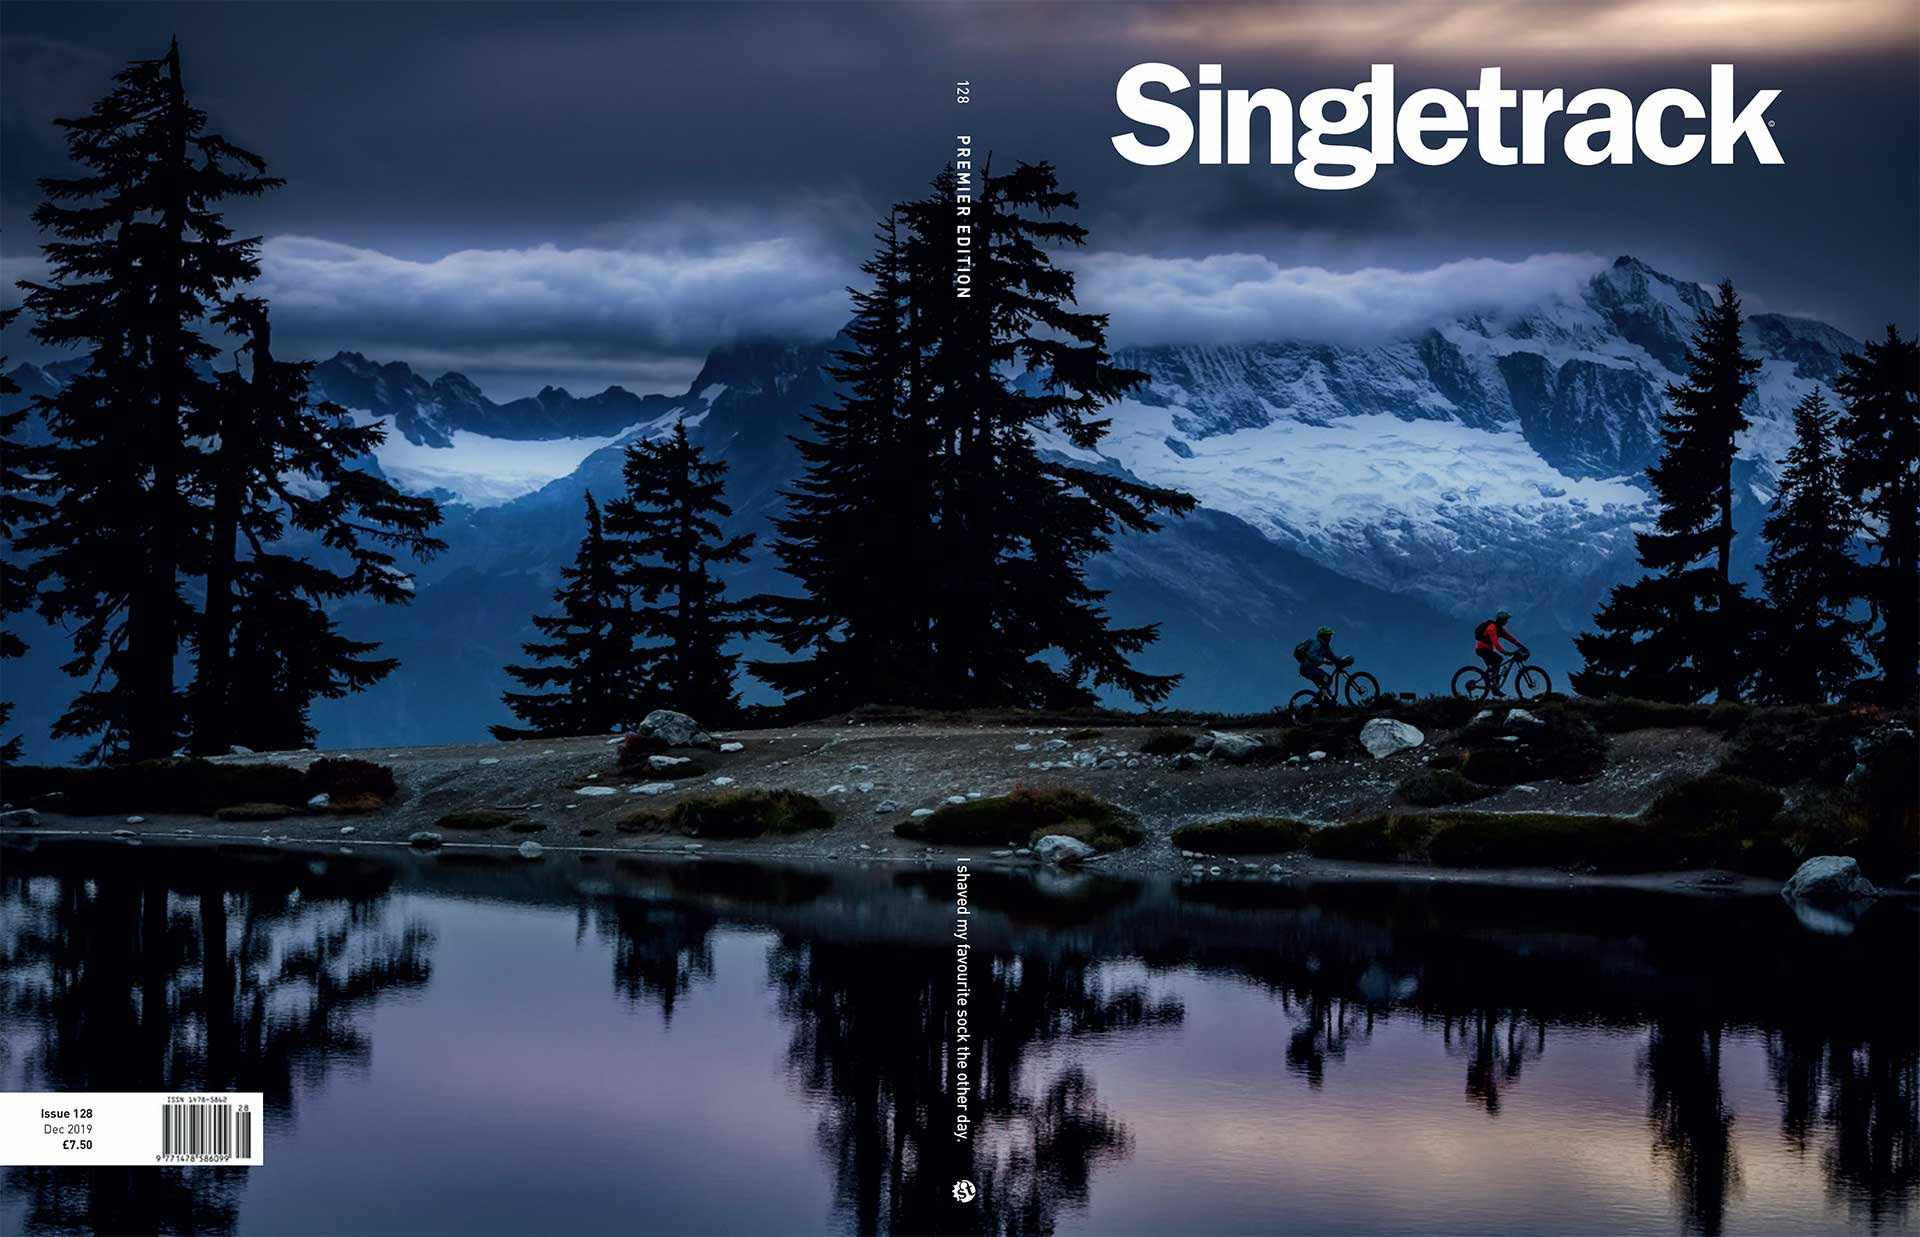 singletrack issue 128 cover landscape